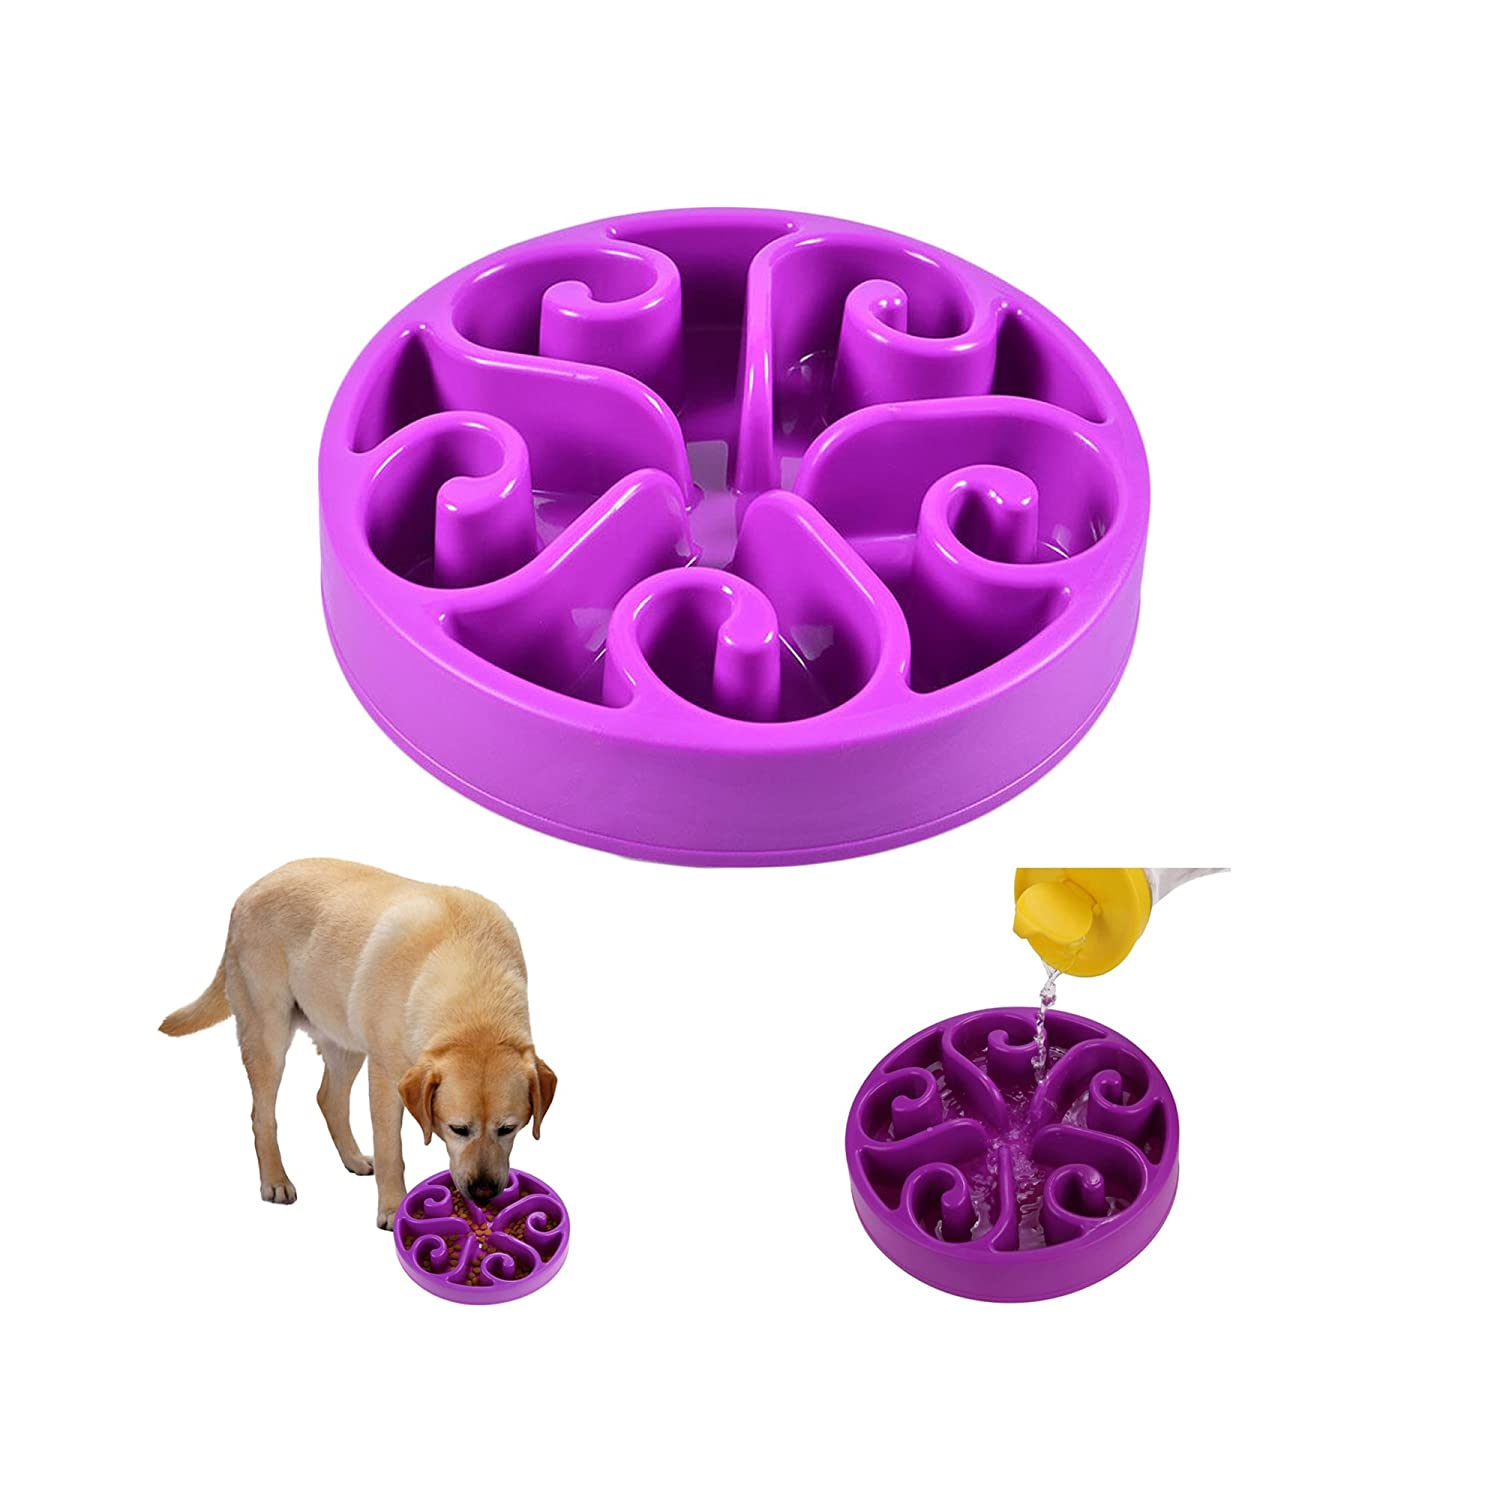 MCBOSON Fun Feeder Slow Feed Interactive Bloat Stop Dog Bowl For Small & Medium Dogs and Cats, Food -Safe and NON SLIP Design Pet Food Bowl Maze